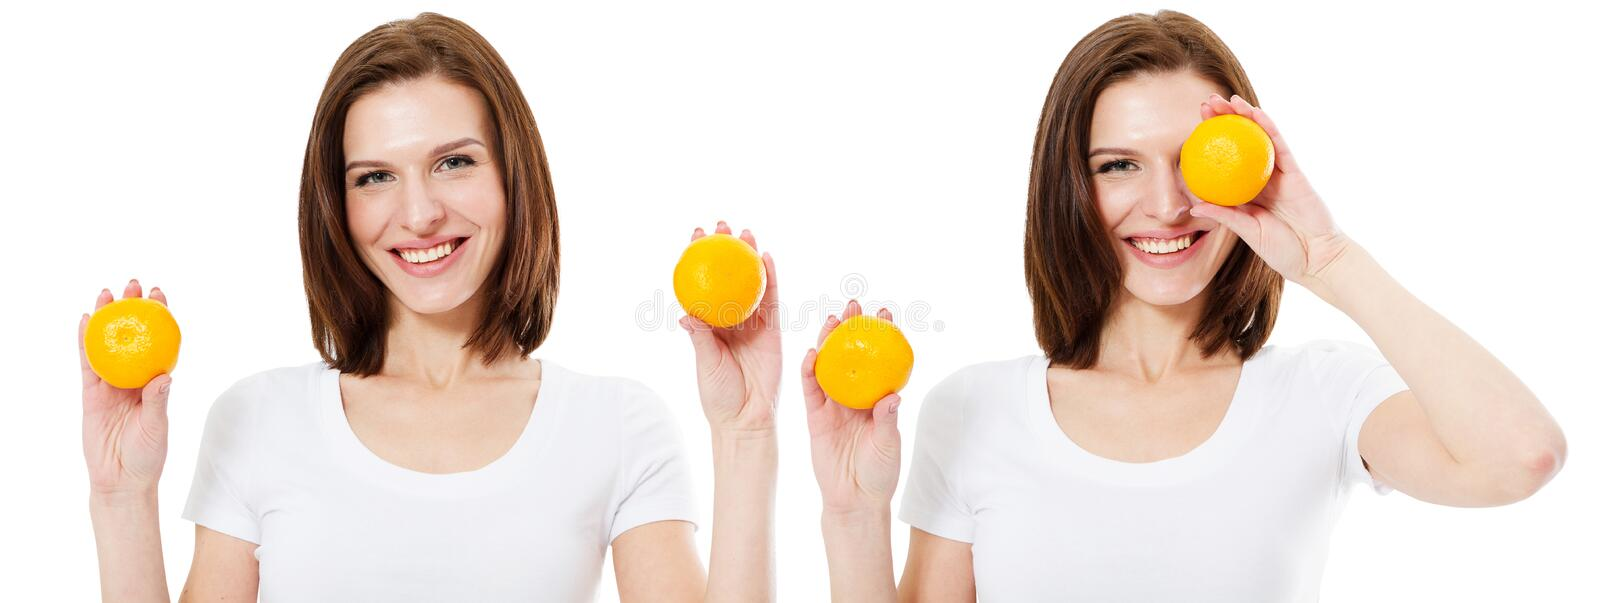 Young beautiful woman with orange on white background.Beauty, cosmetics and fashion concept.  royalty free stock photos